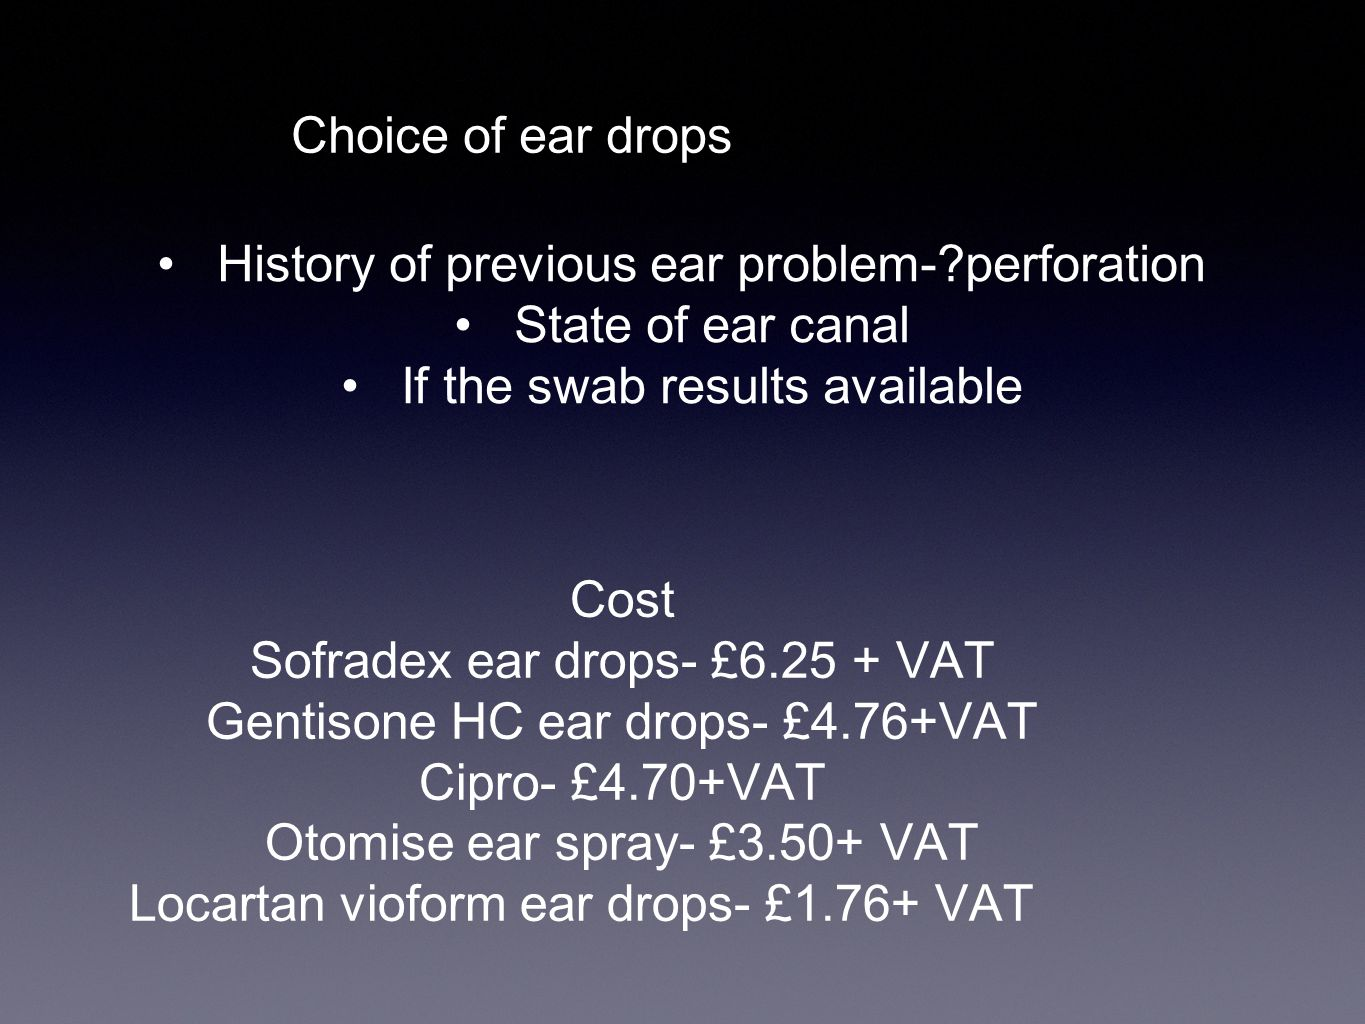 History of previous ear problem- perforation State of ear canal